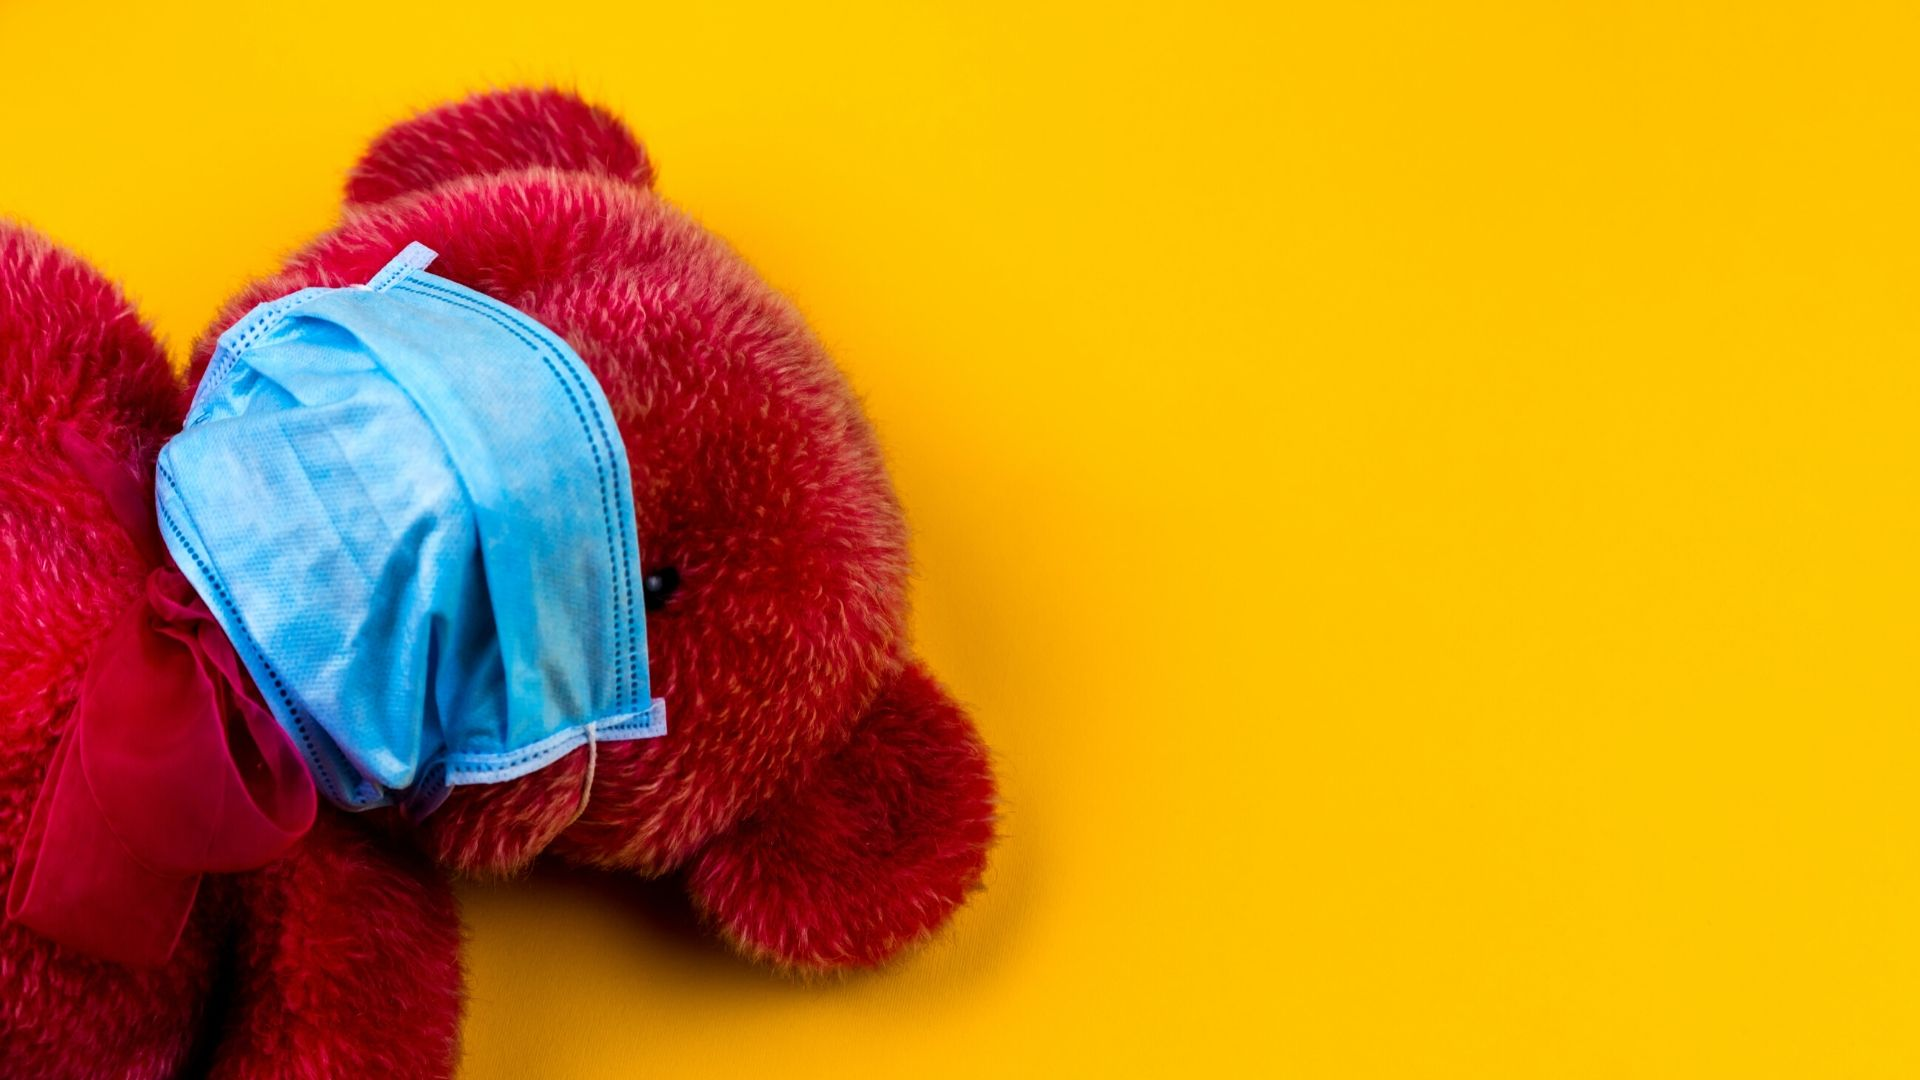 Red Teddy in a surgical mask on a yellow background - helping anxious children to trust God